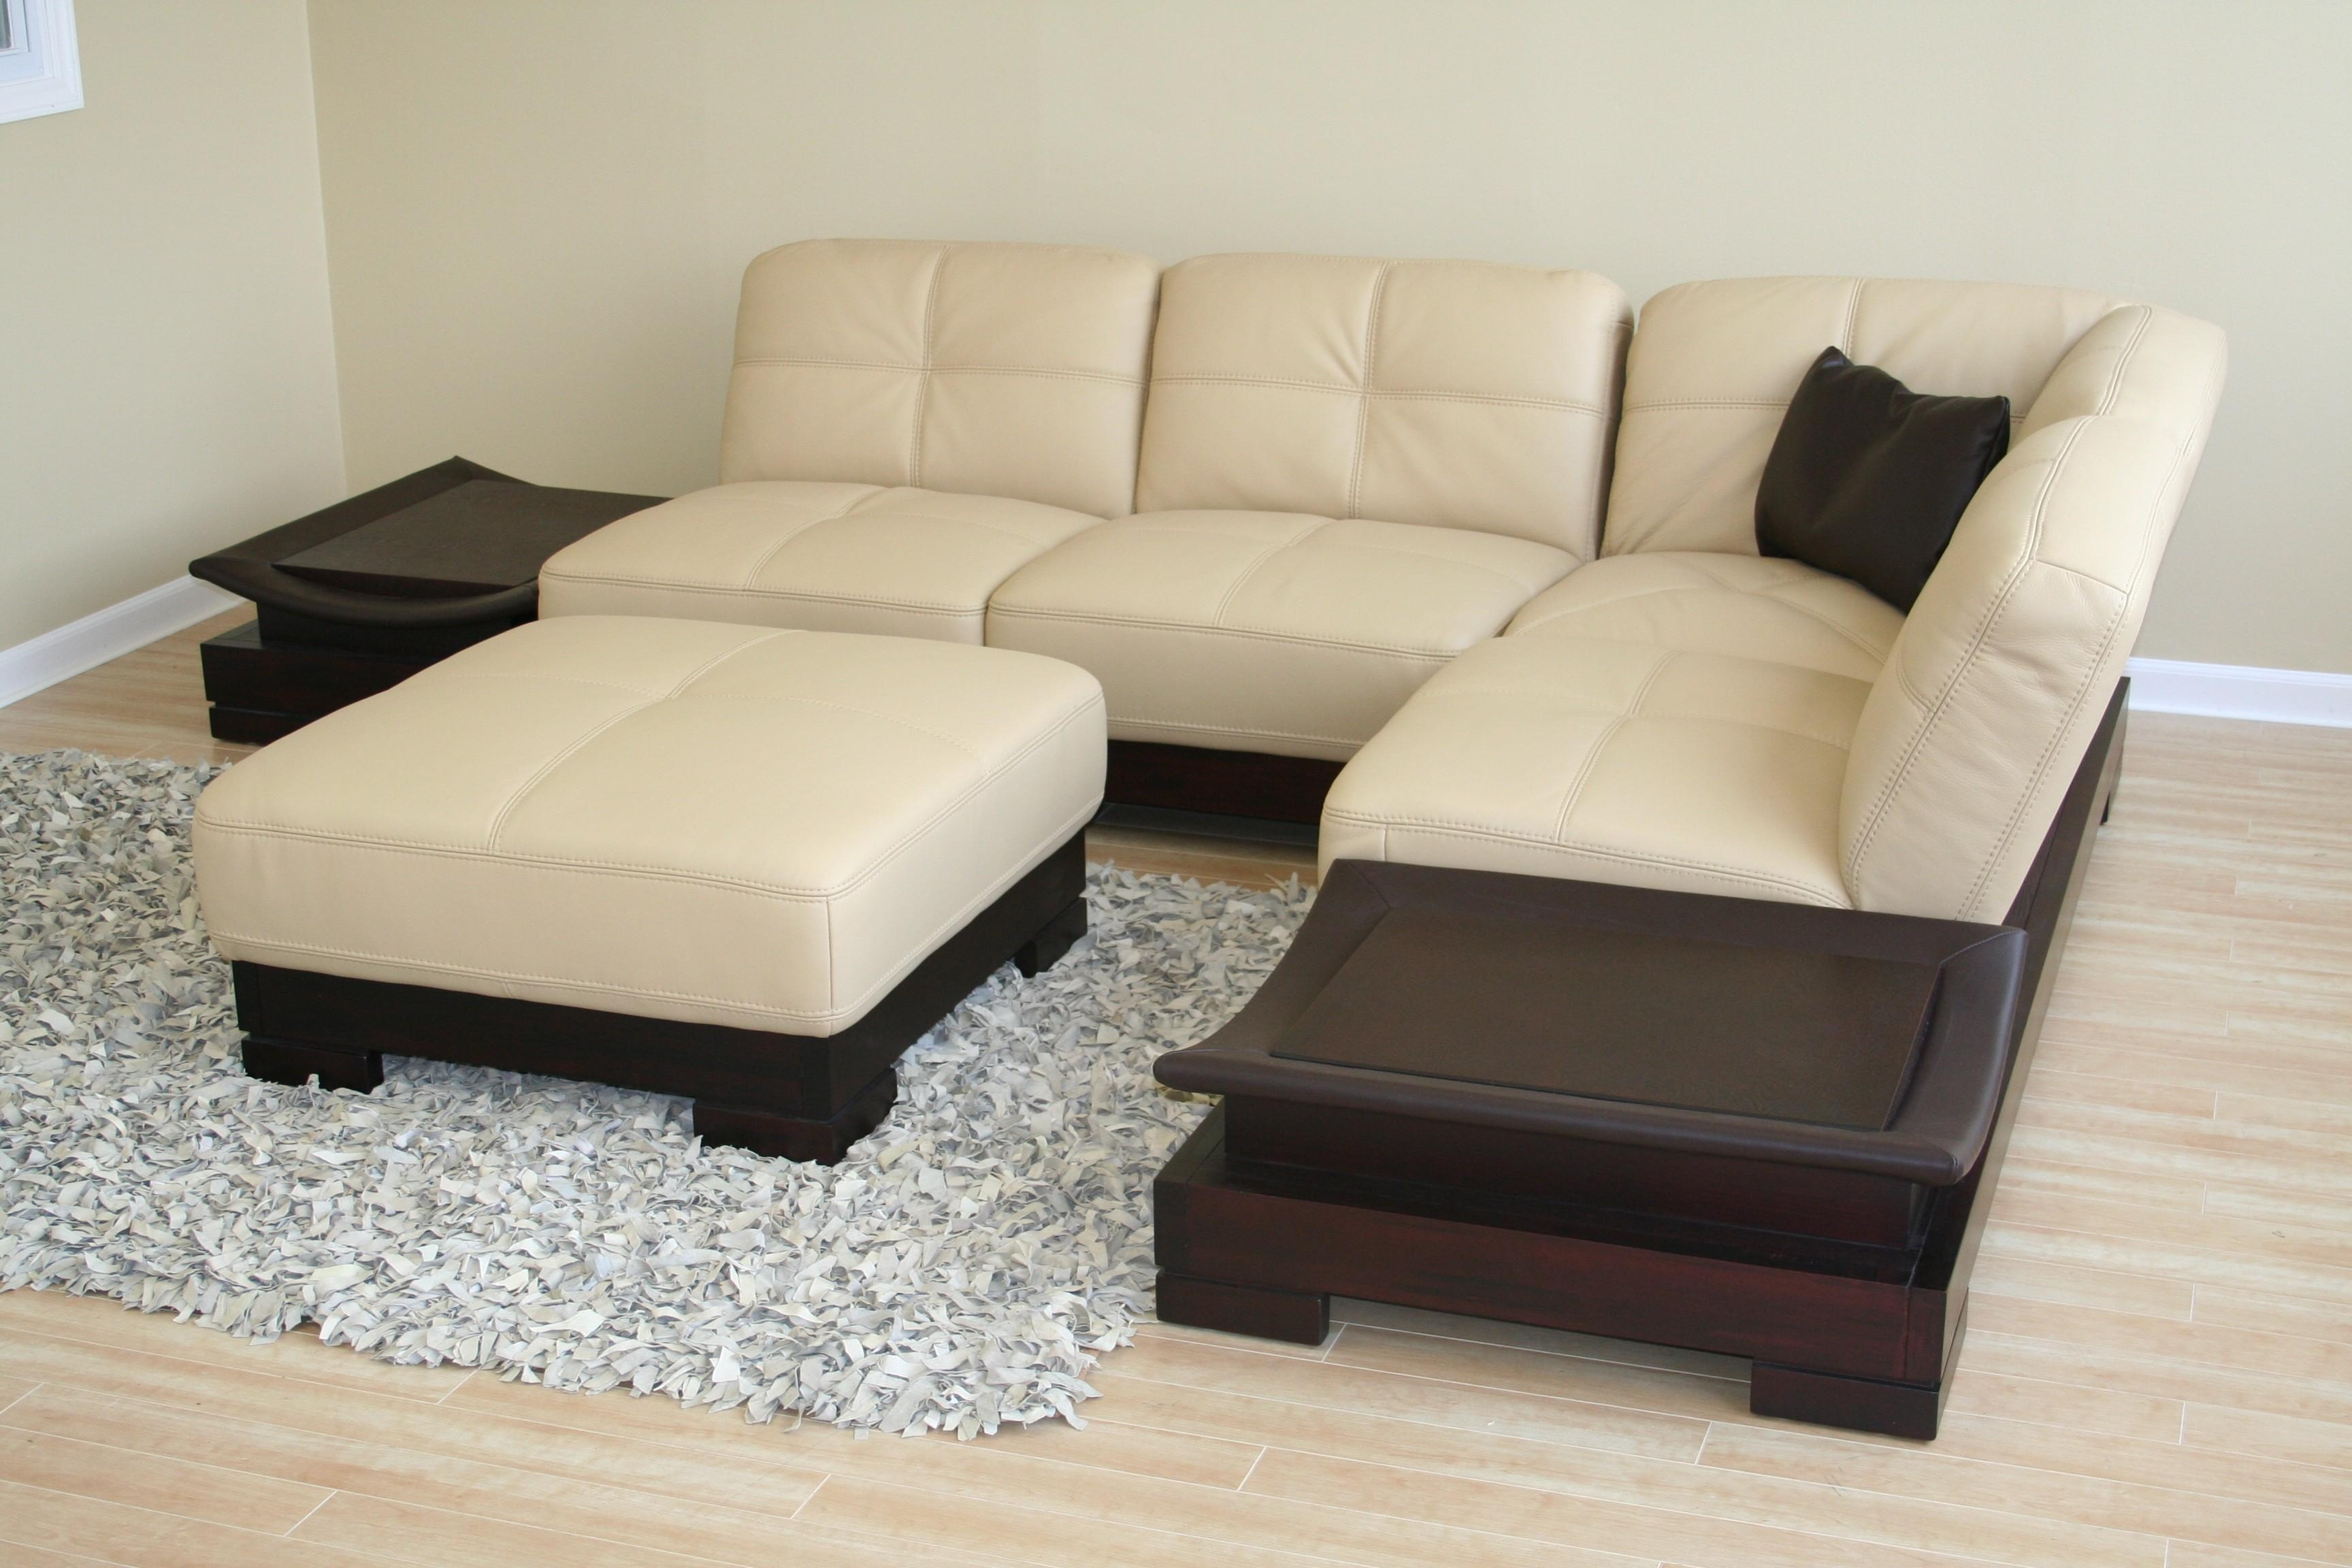 Small Scale Sofa With Chaise | Tehranmix Decoration Within Small Scale Sofas (Image 14 of 20)